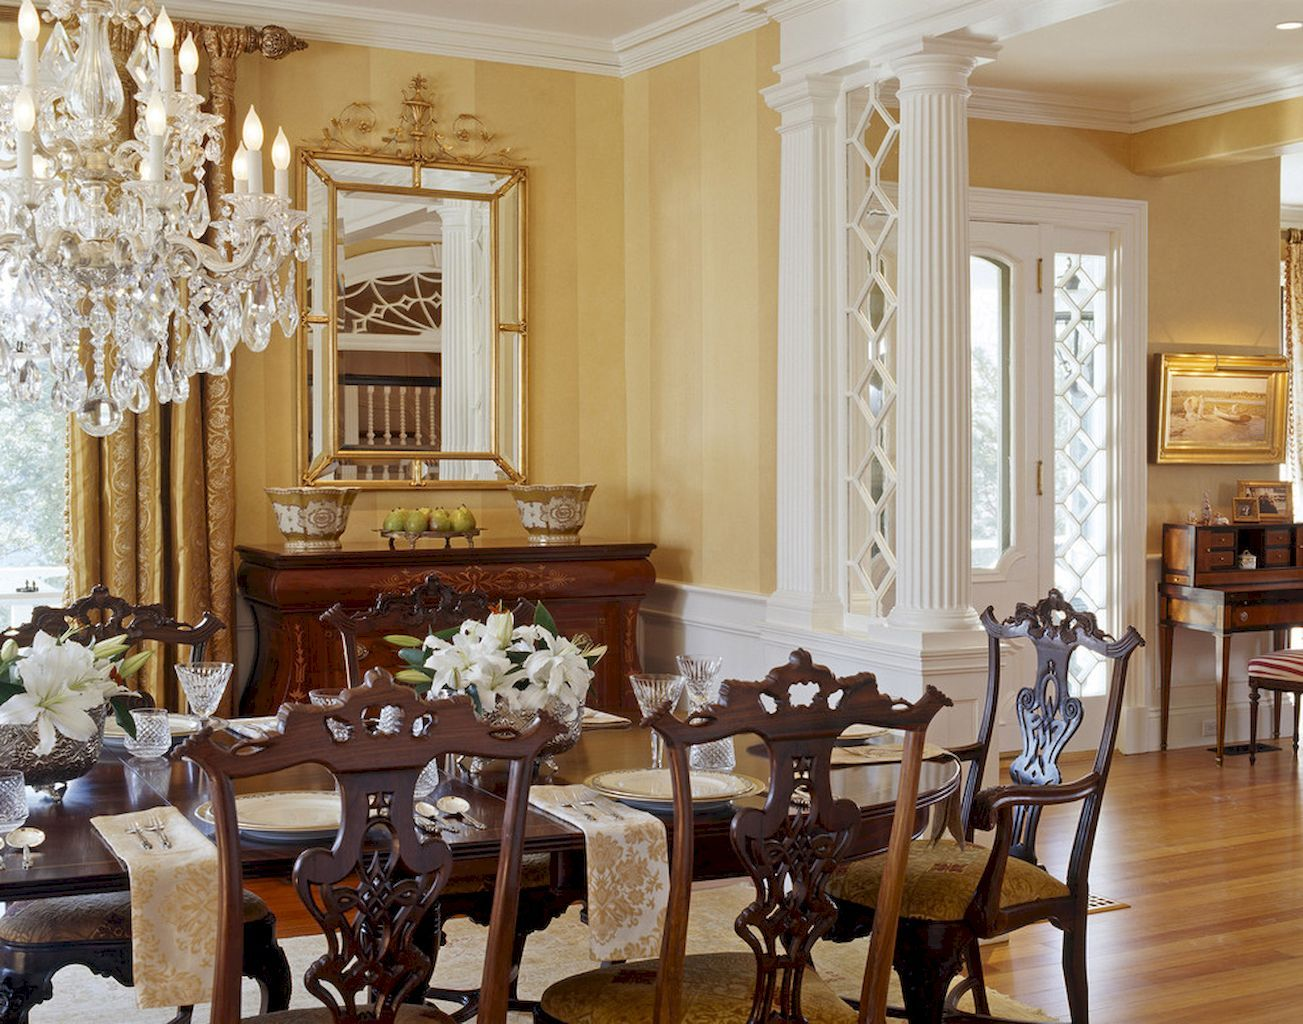 55 Vintage Victorian Dining Room Decor Ideas  Victorian Dining Beauteous Victorian Dining Room Decor Review